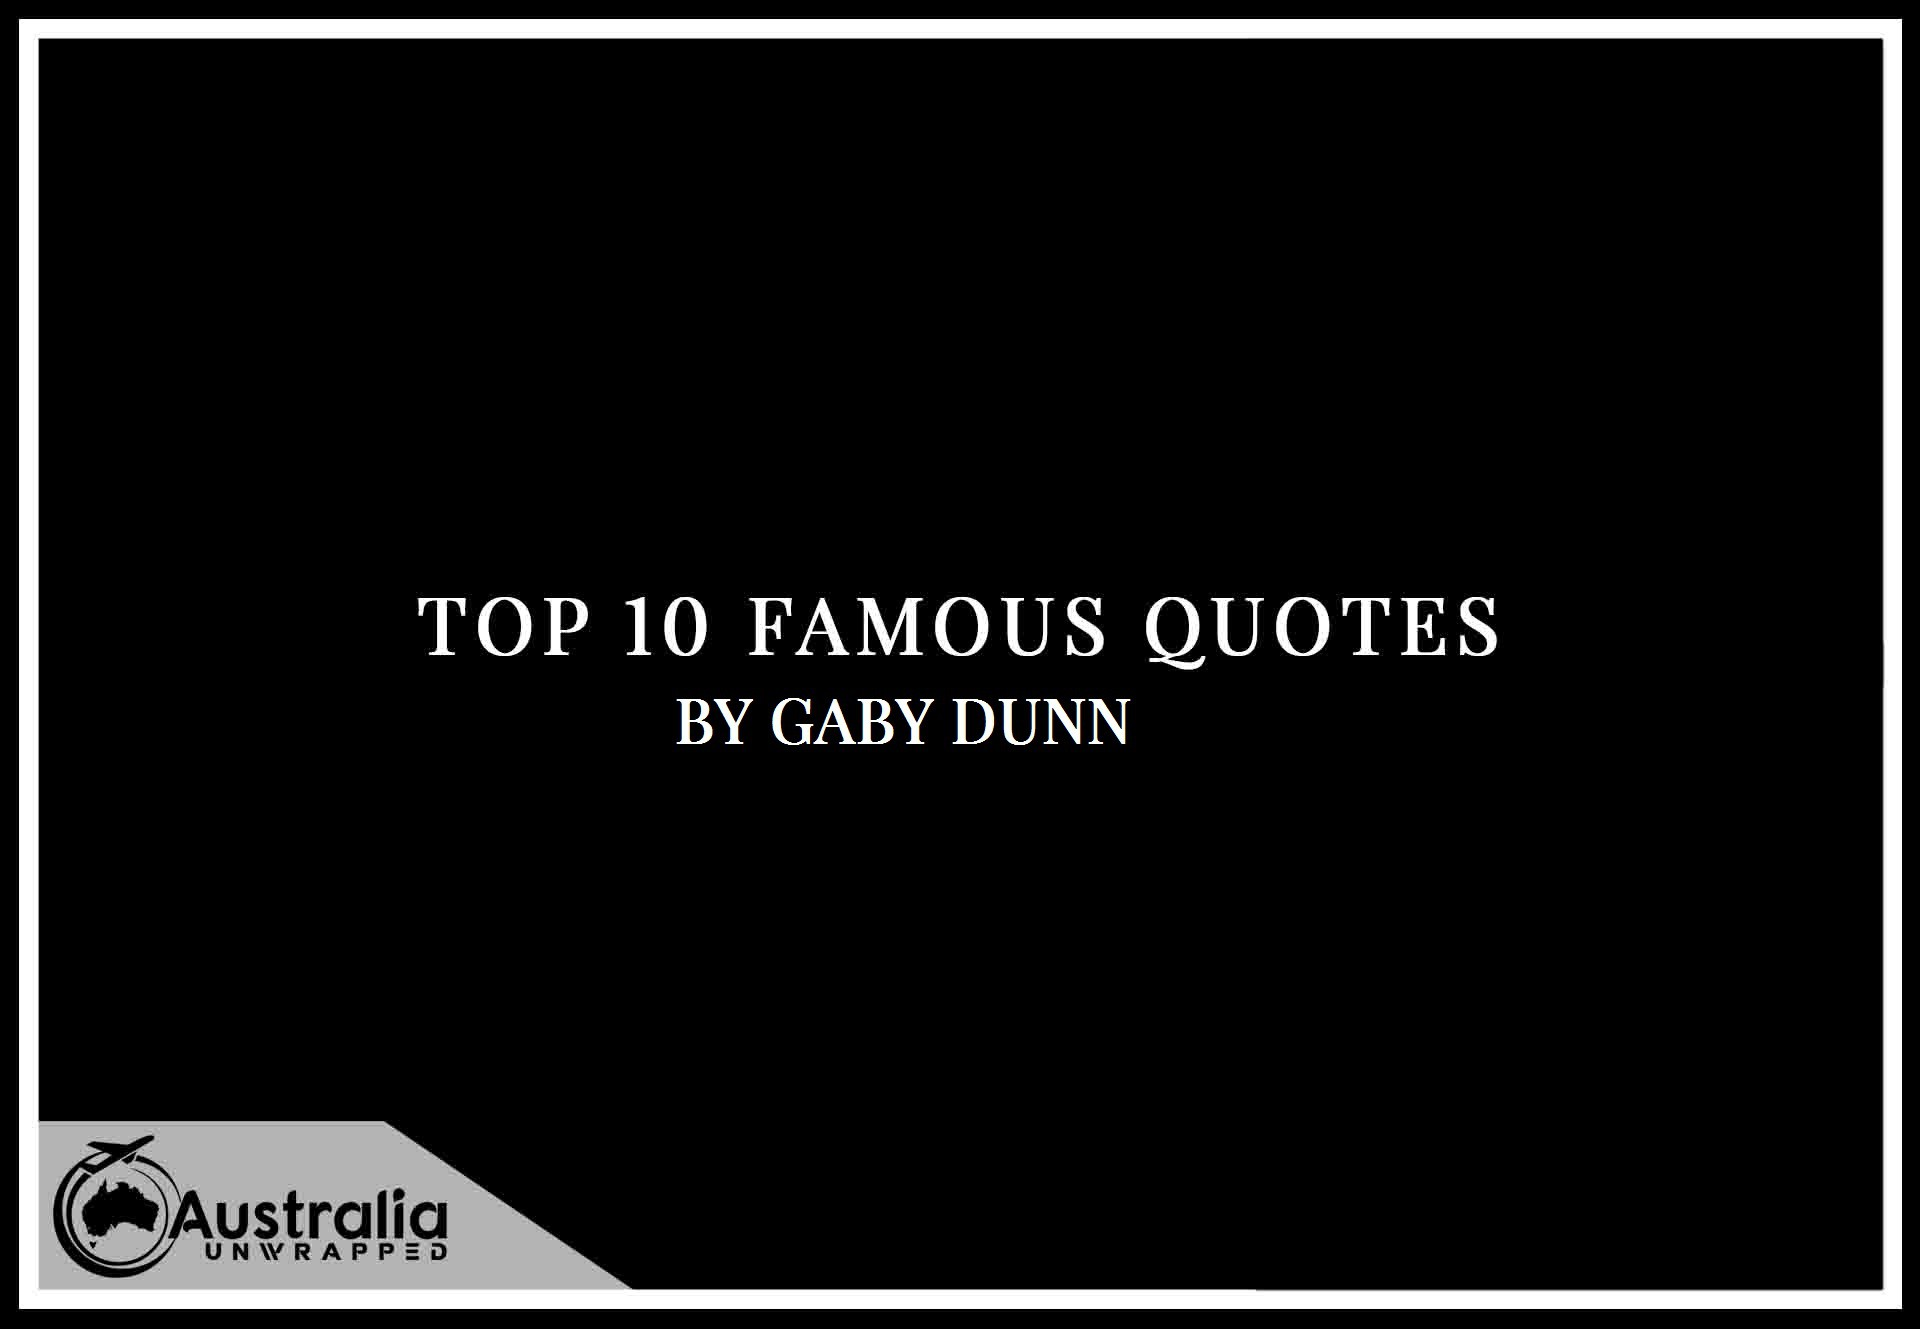 Gaby Dunn's Top 10 Popular and Famous Quotes